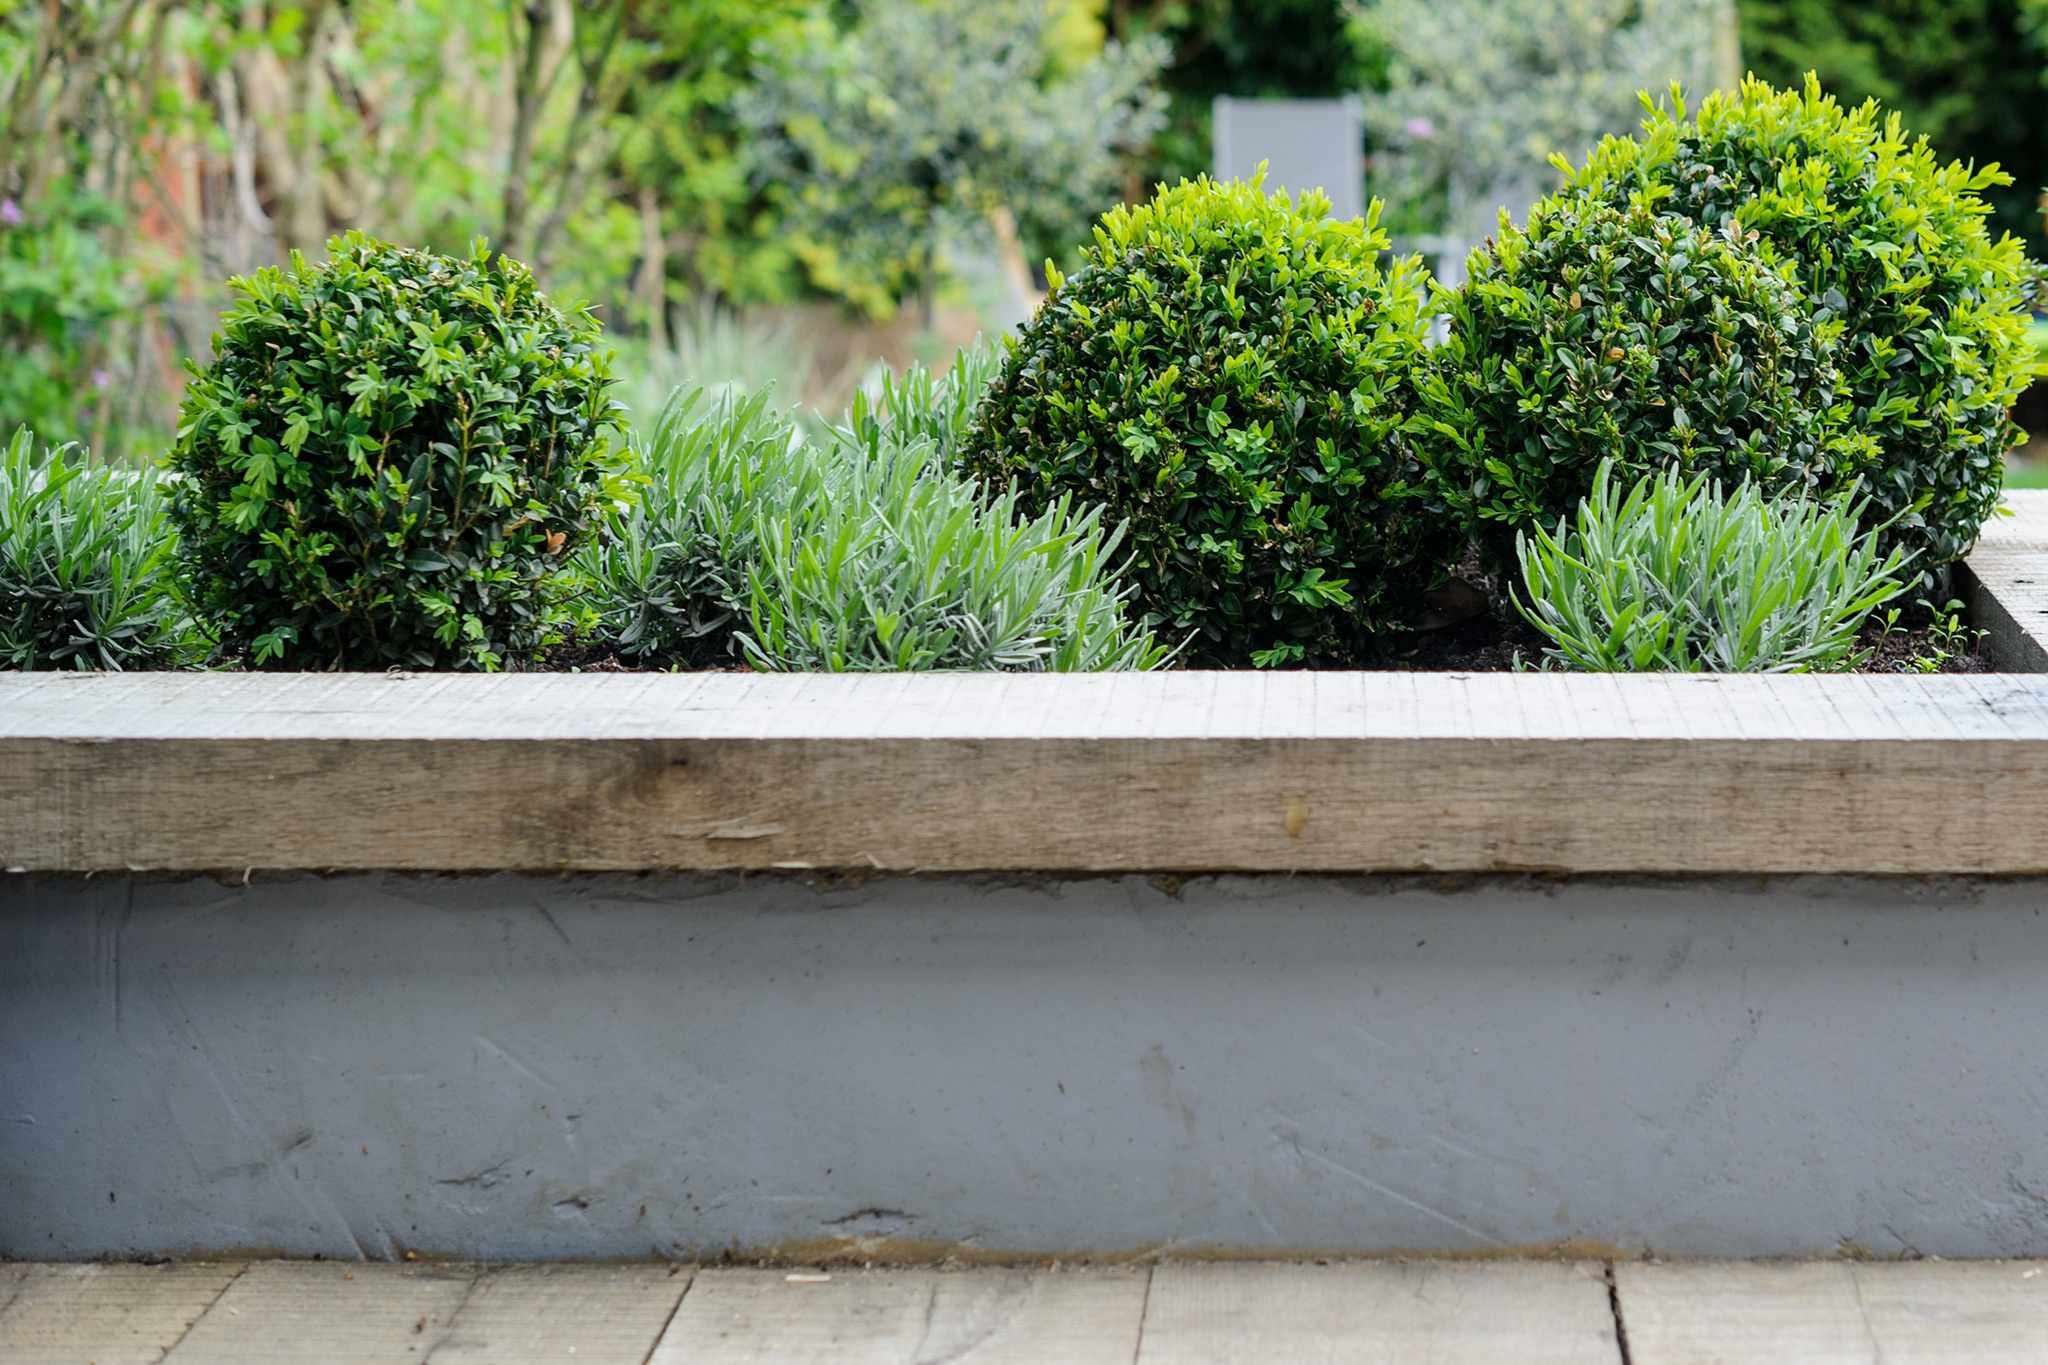 Box balls in a raised bed